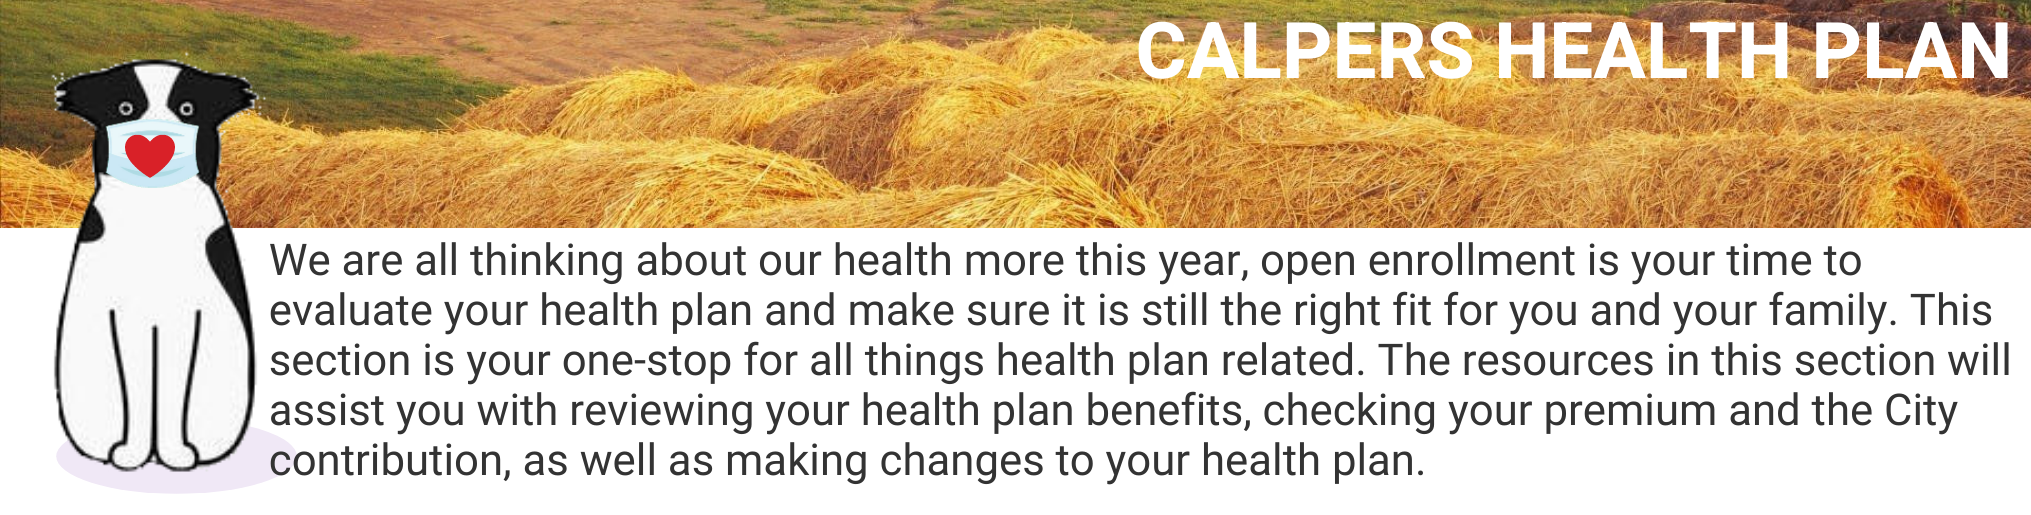 CalPERS-Medical-Banner.png